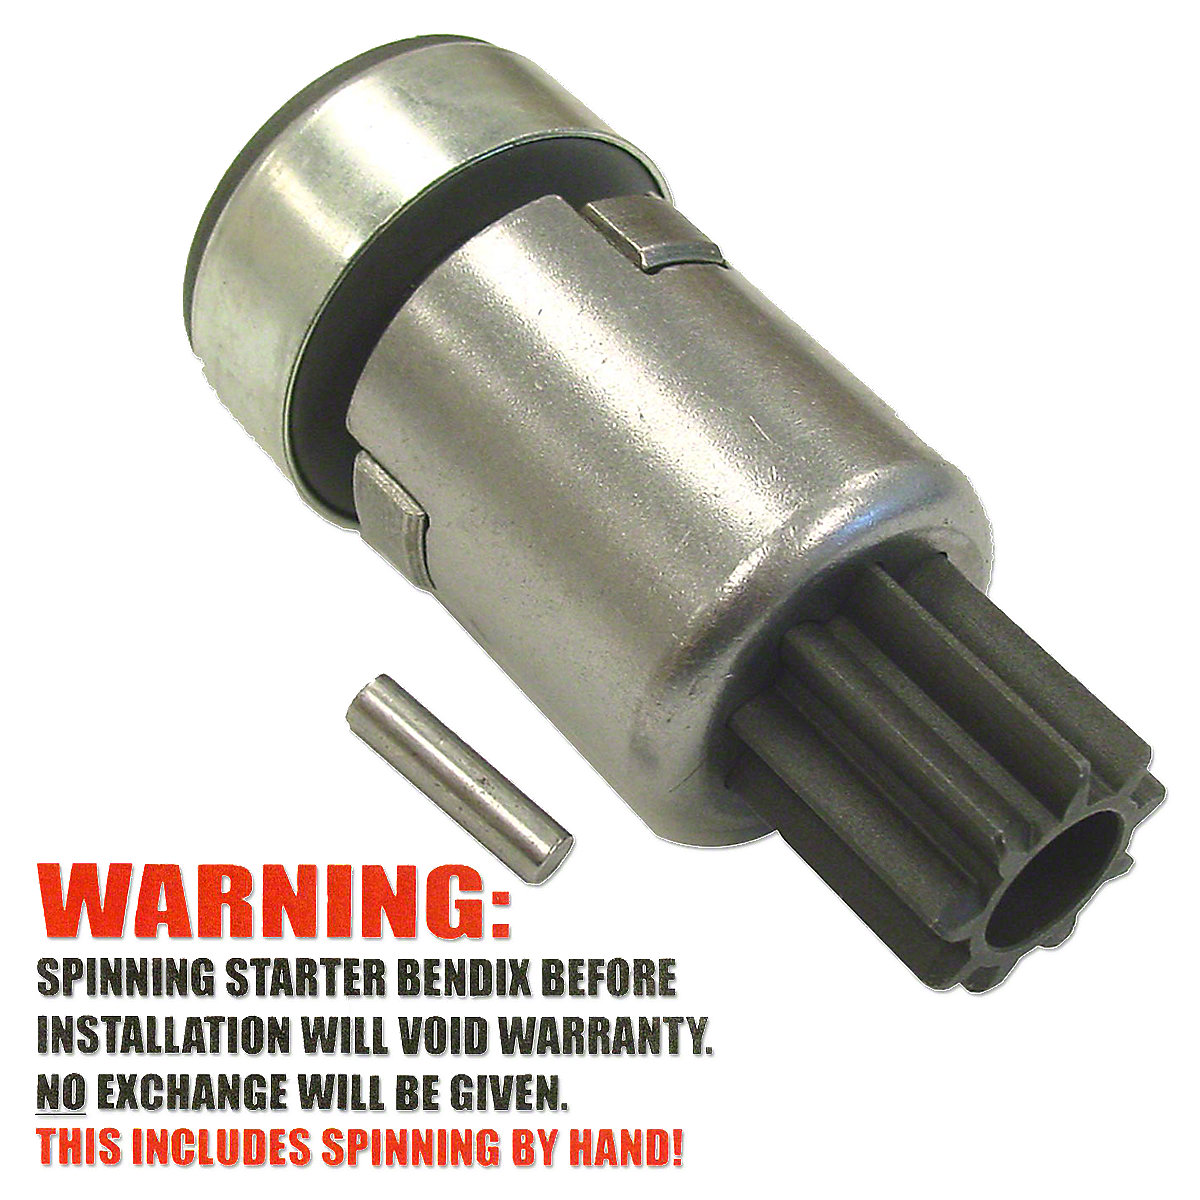 ABC129 Ratchet Style Starter Drive (Bendix)